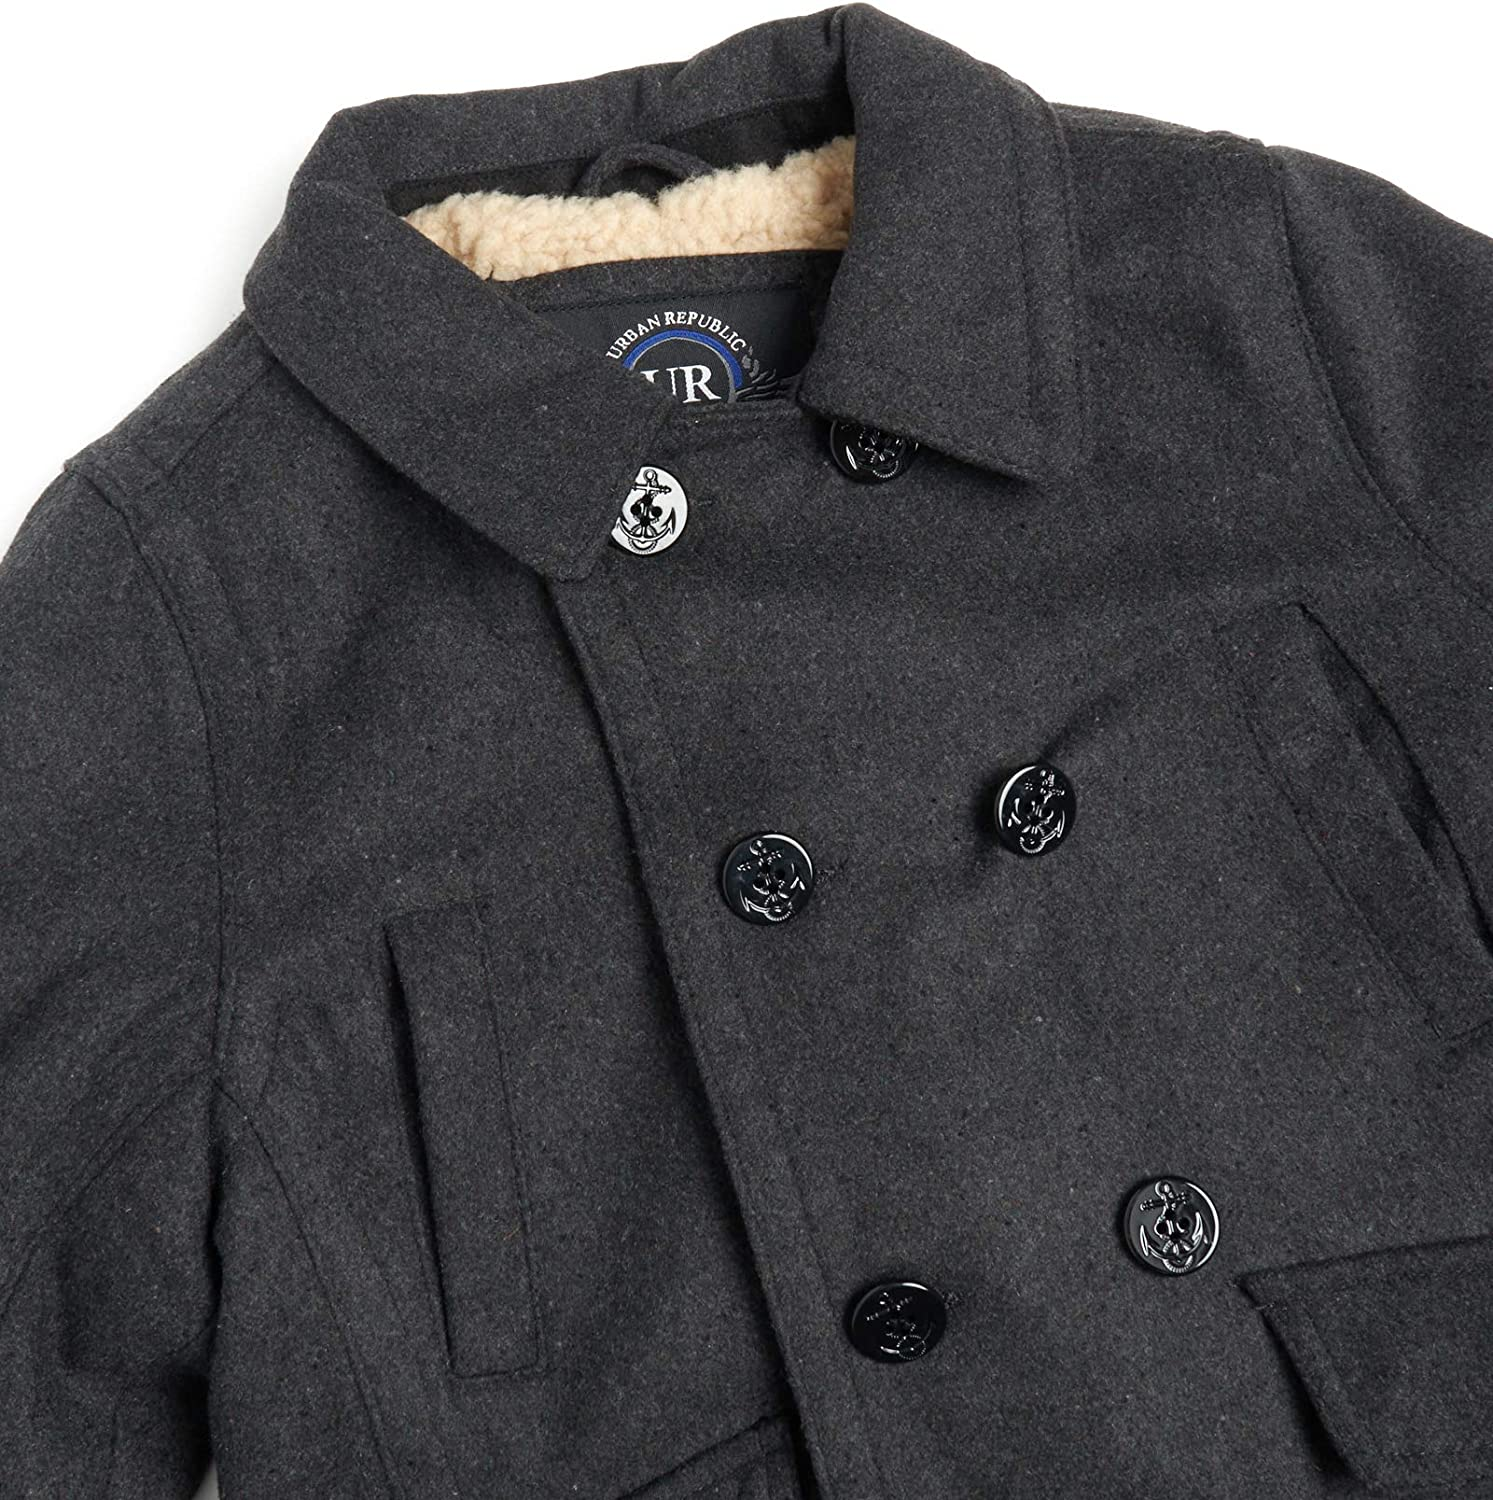 Urban Republic Boys Wool Blend Peacoat with Faux-Fur Lining and Flap Pockets